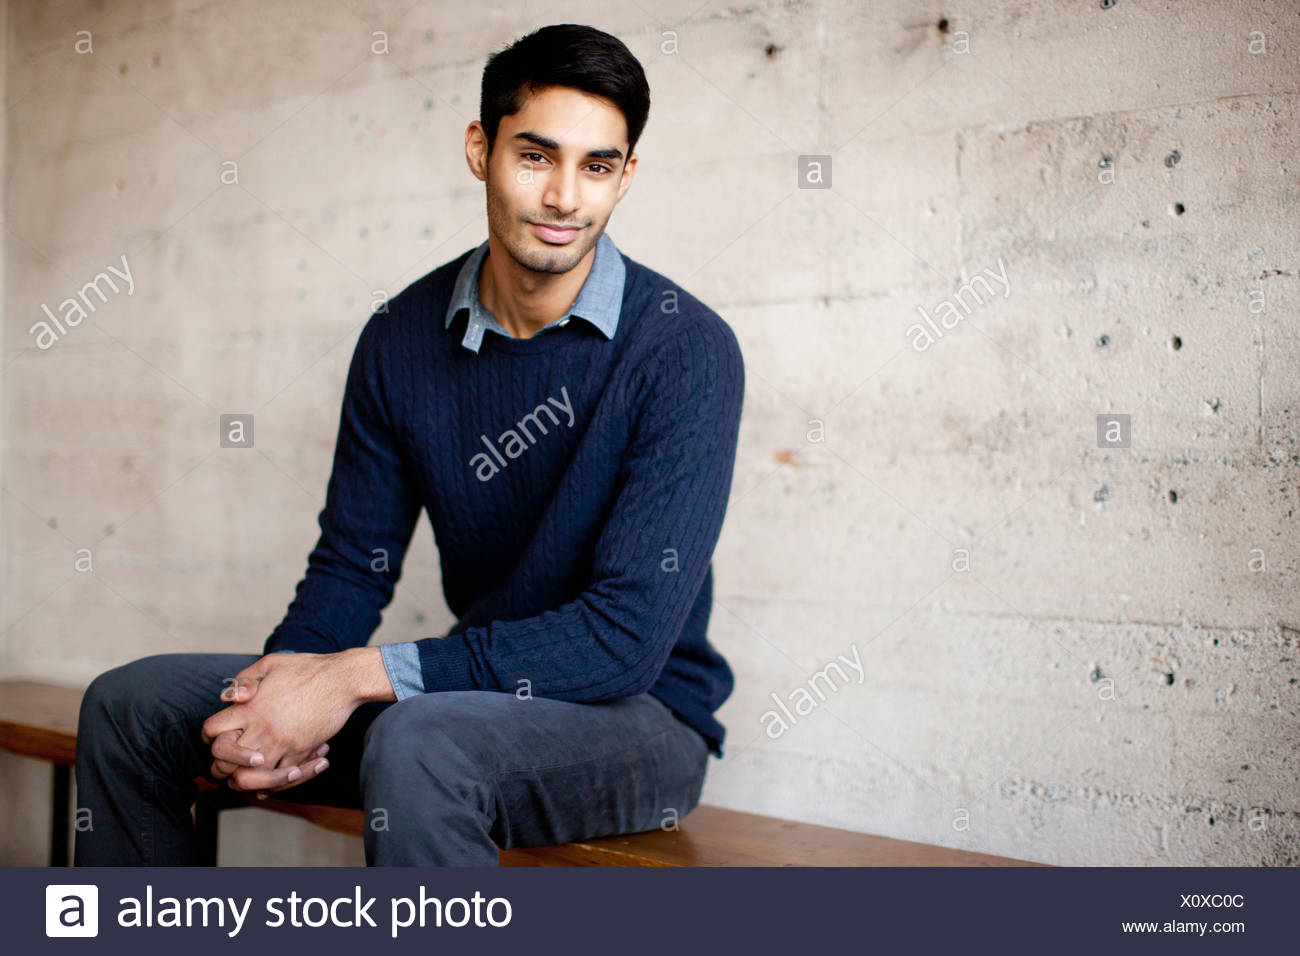 Smiling man sitting on bench - Stock Image